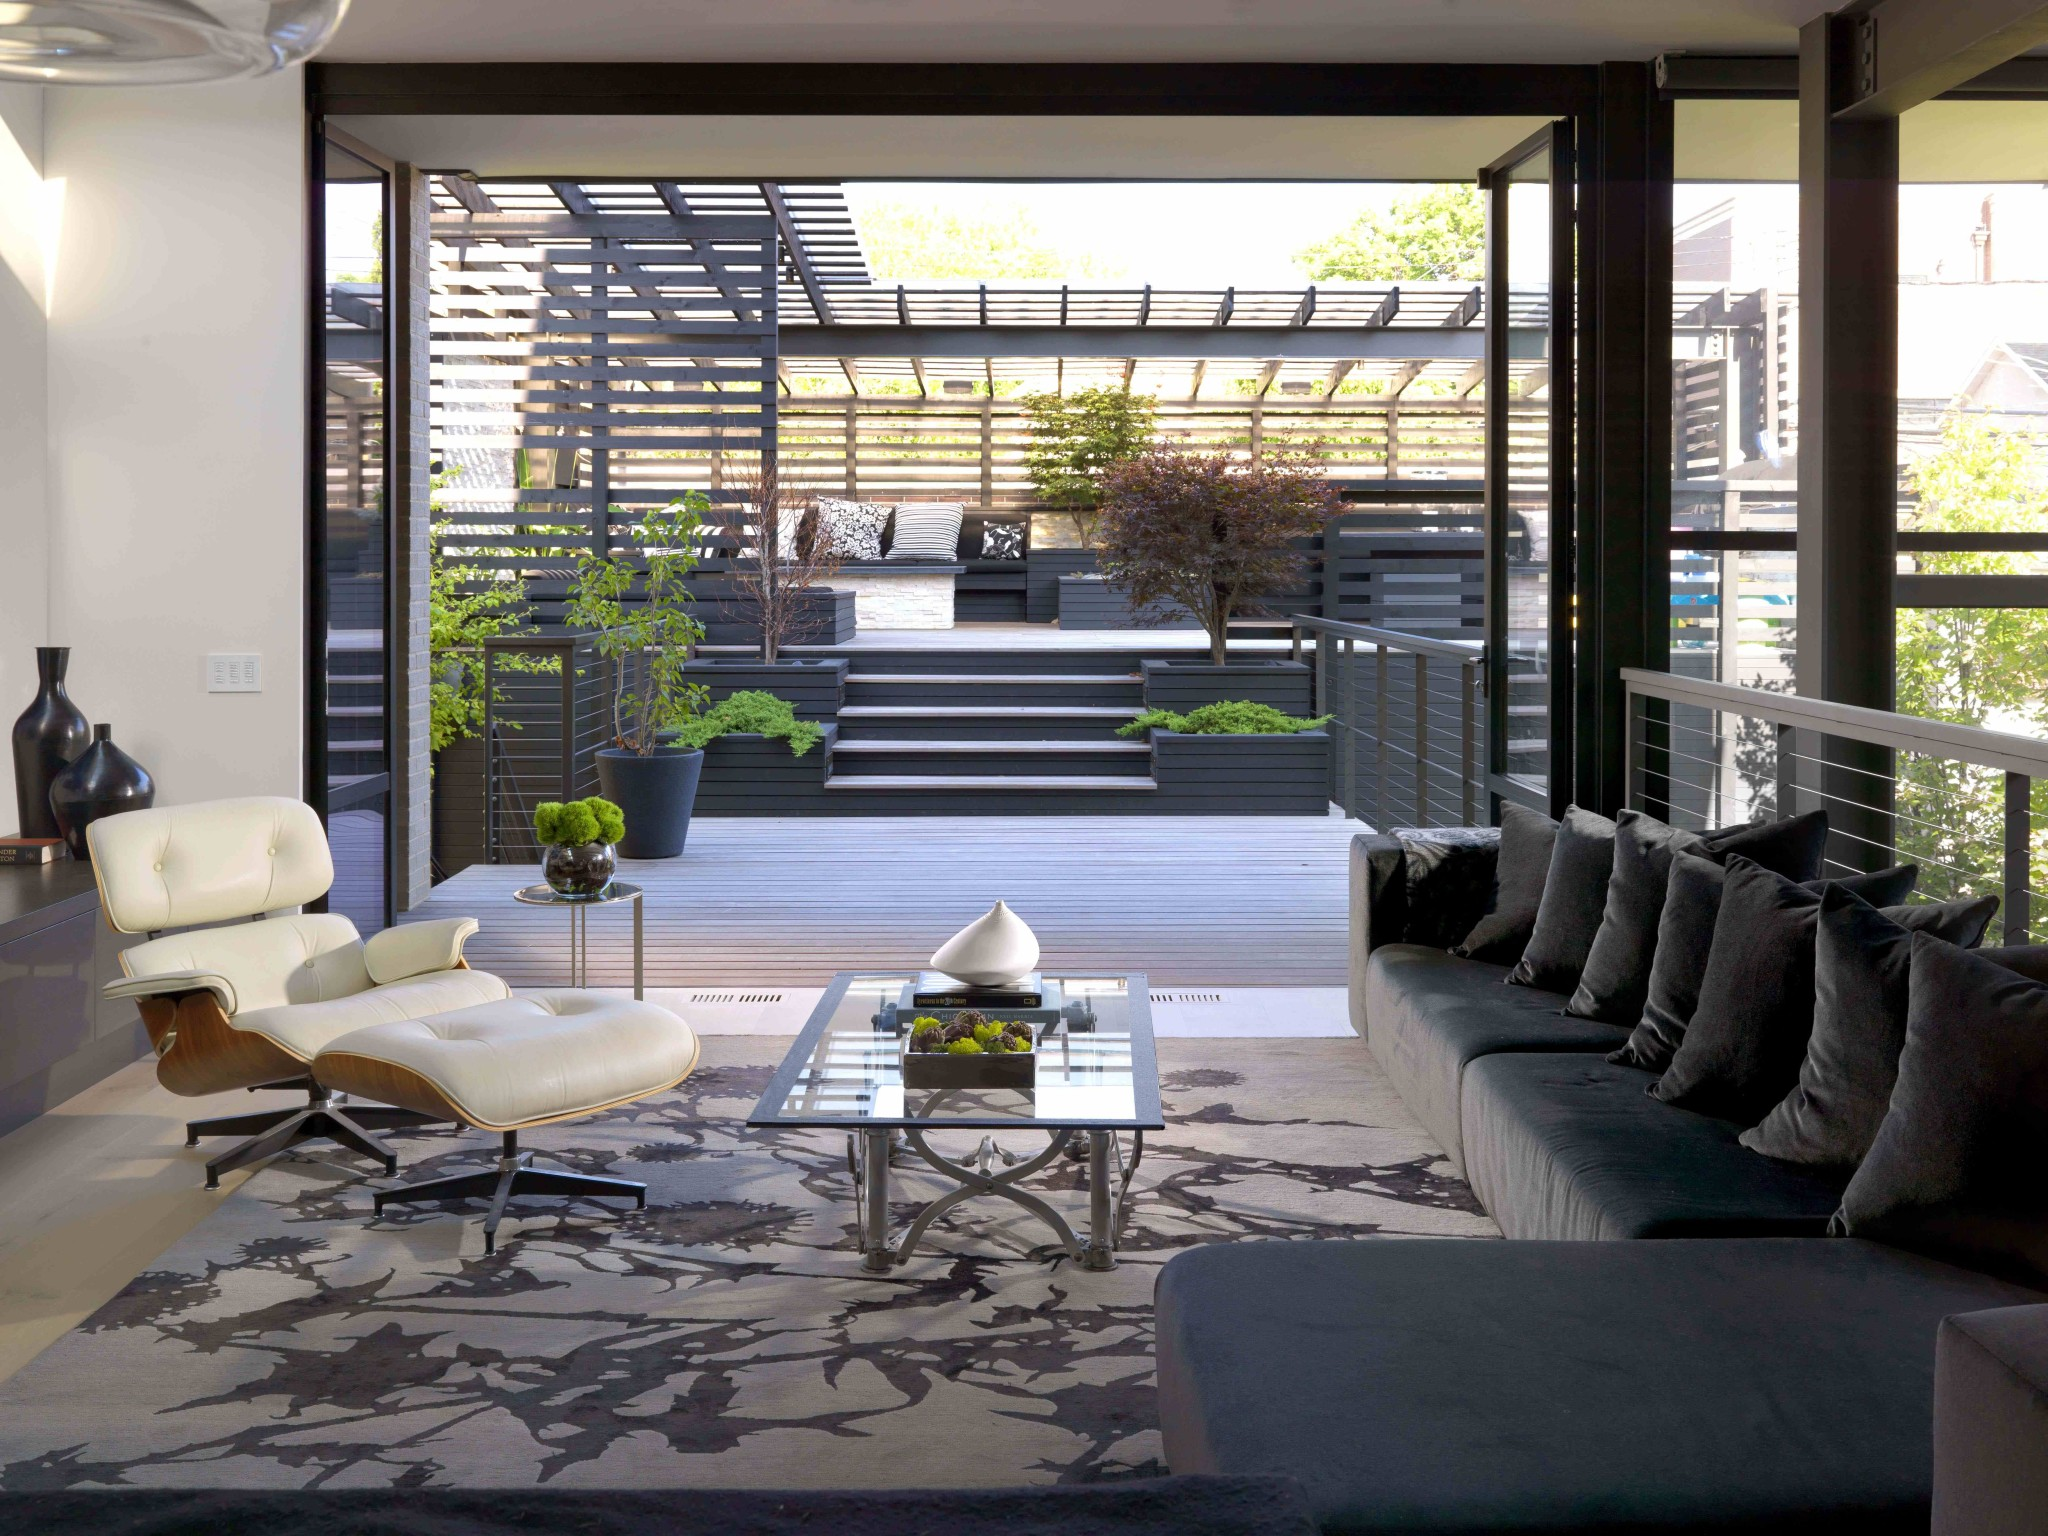 A Contemporary Home Design features Iconic MidCentury Furniture